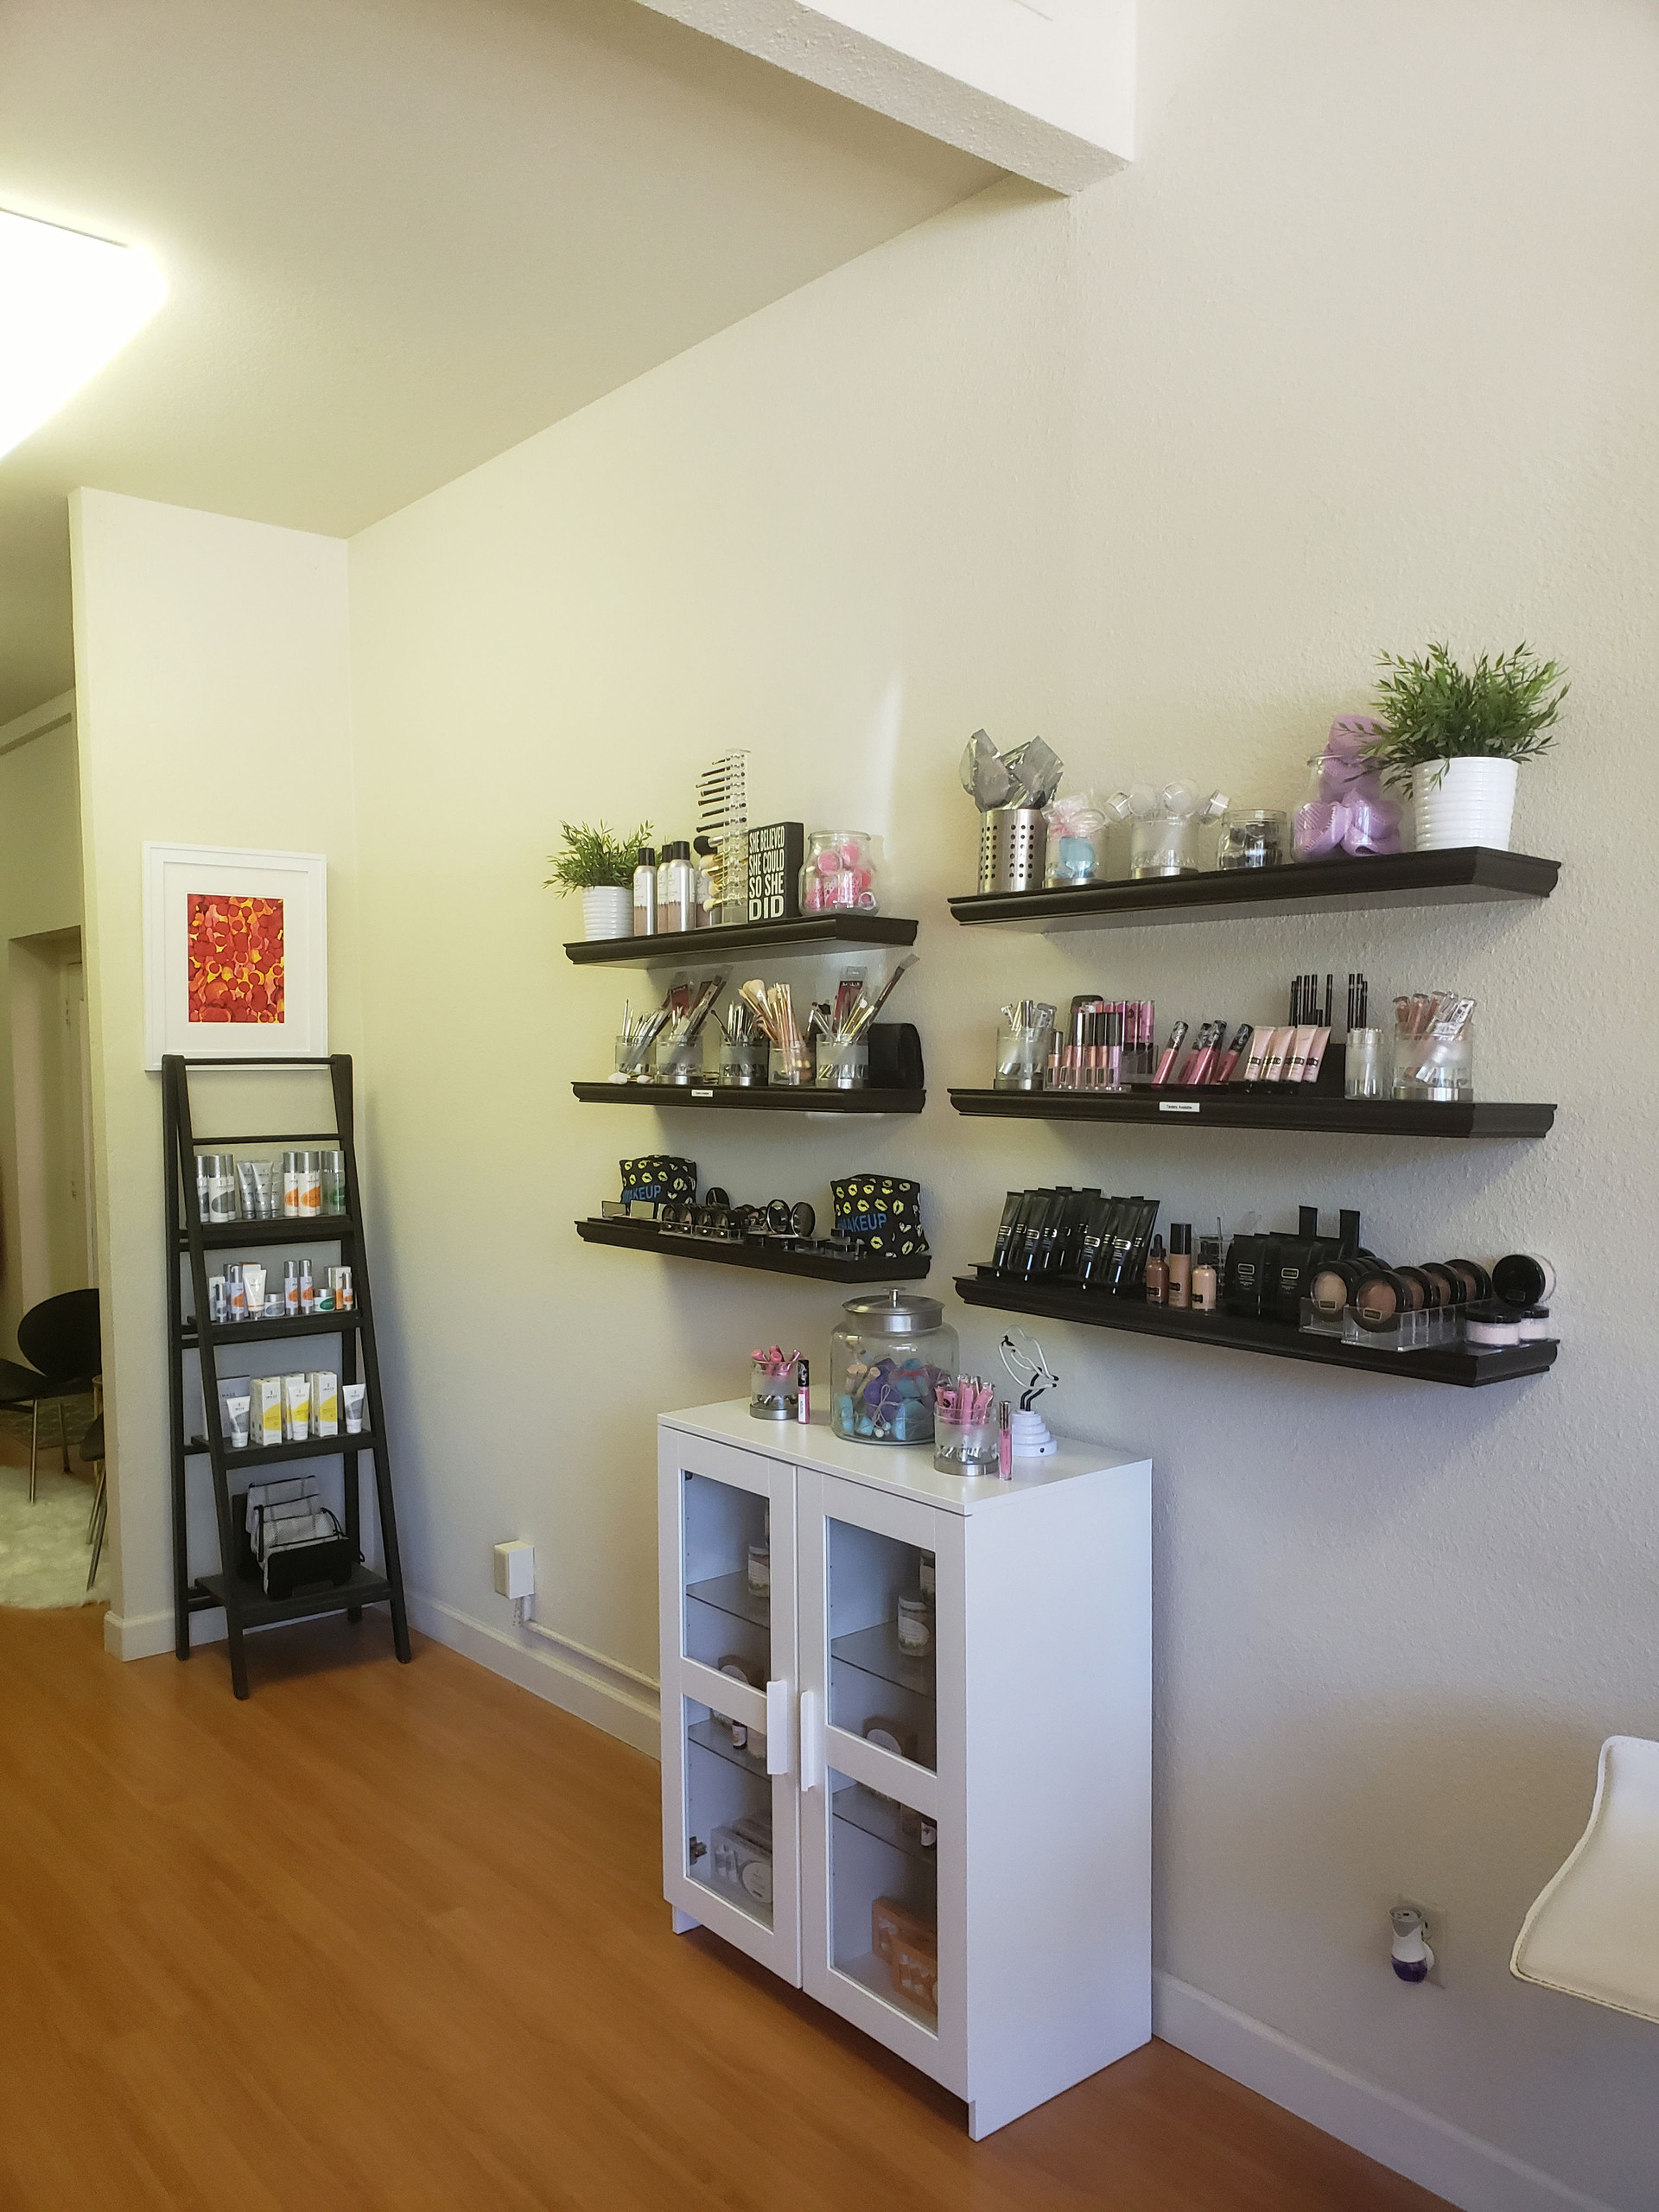 Makeup and Skin Care for Purchase